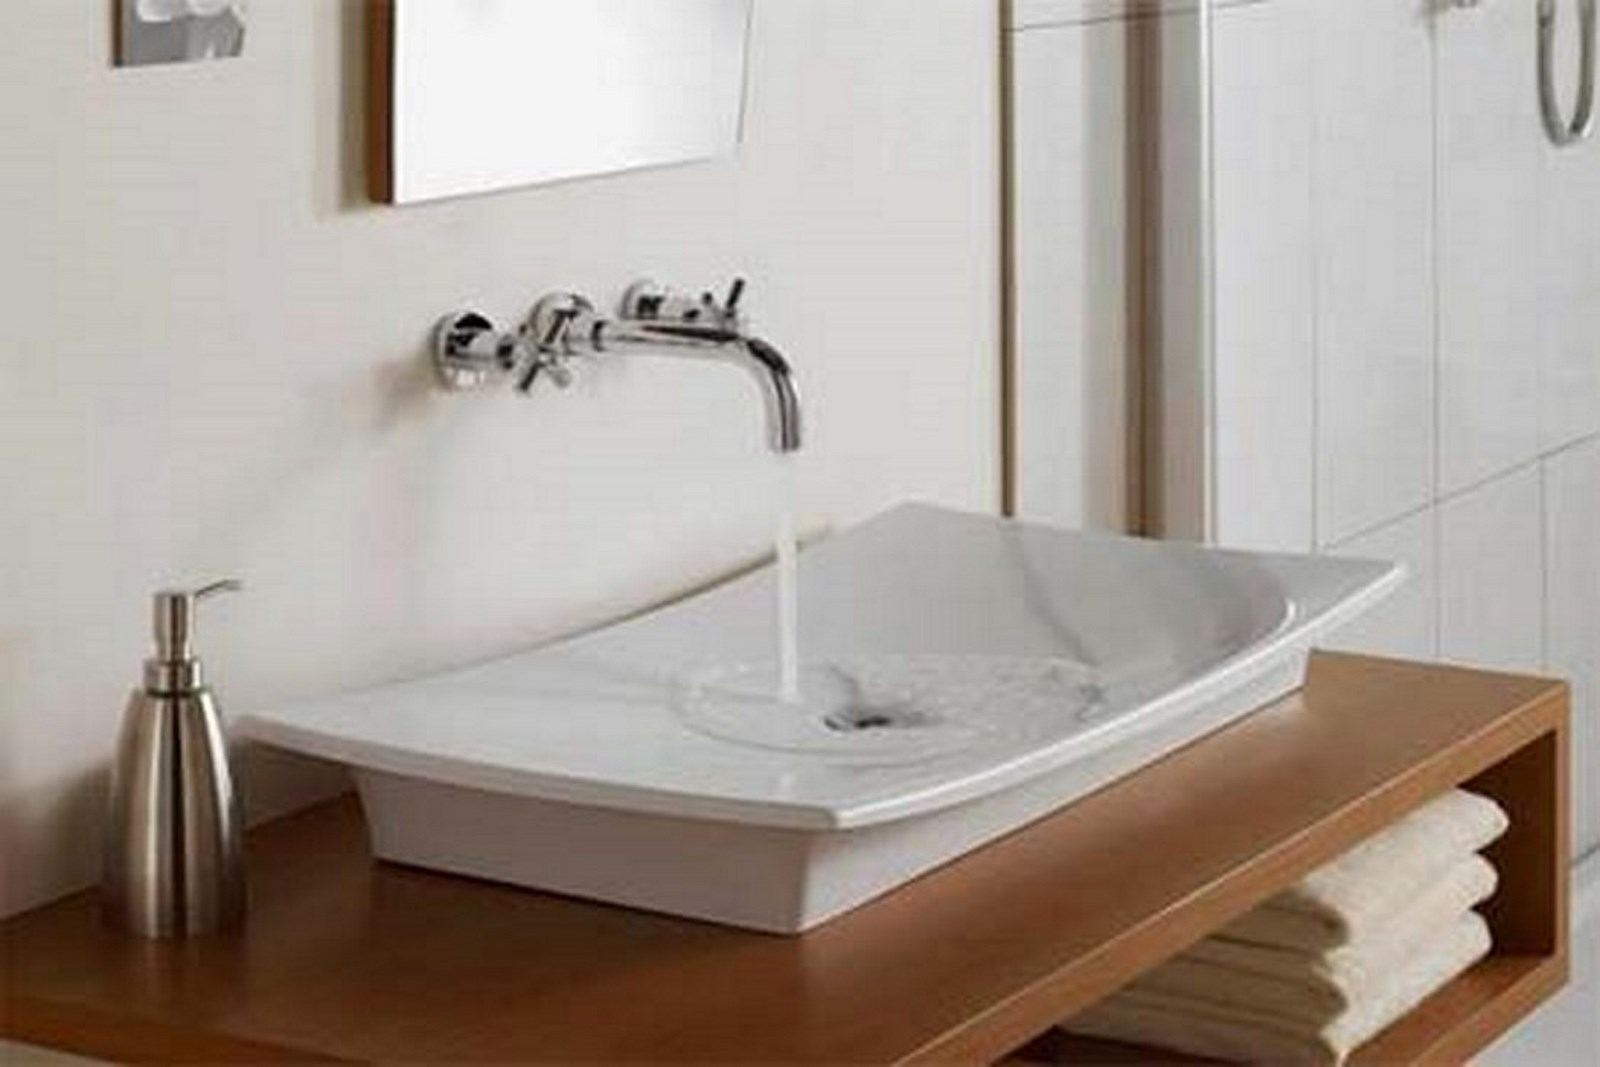 Bathroom:Bathroom Sinks And Faucets Ideas Sink Imagestc Com Bathroom Sinks  And Faucets Ideas Sink